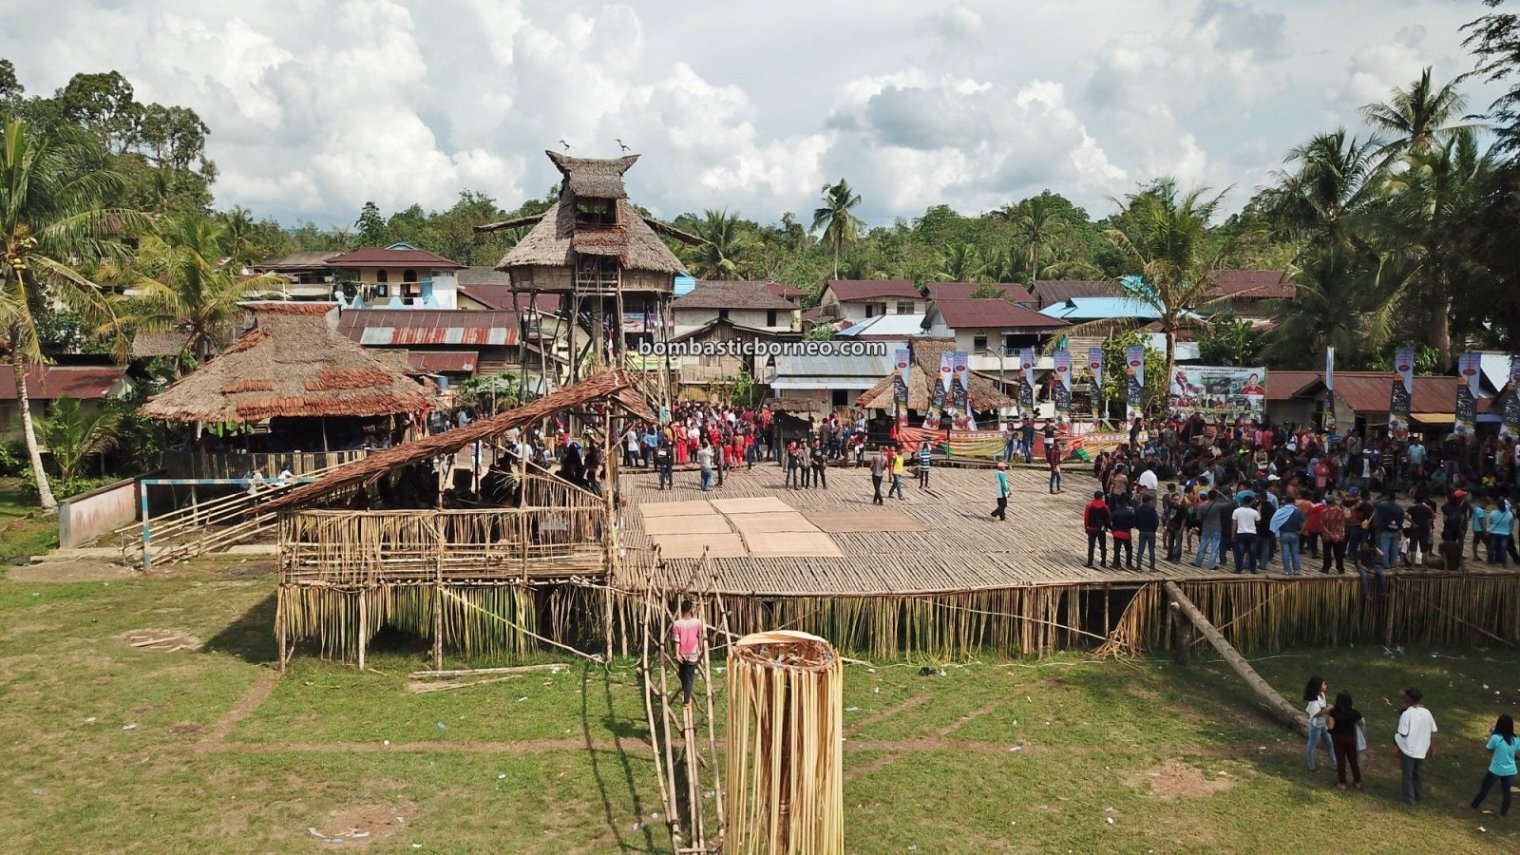 Gawai Harvest Festival, traditional, village, West Kalimantan, Desa Hli Buei, Siding, Dayak Bidayuh, native, skull house, Tourism, tourist attraction, travel guide, Cross Border, 跨境婆罗洲游踪, 印尼达雅克丰收节, 西加里曼丹比达友族